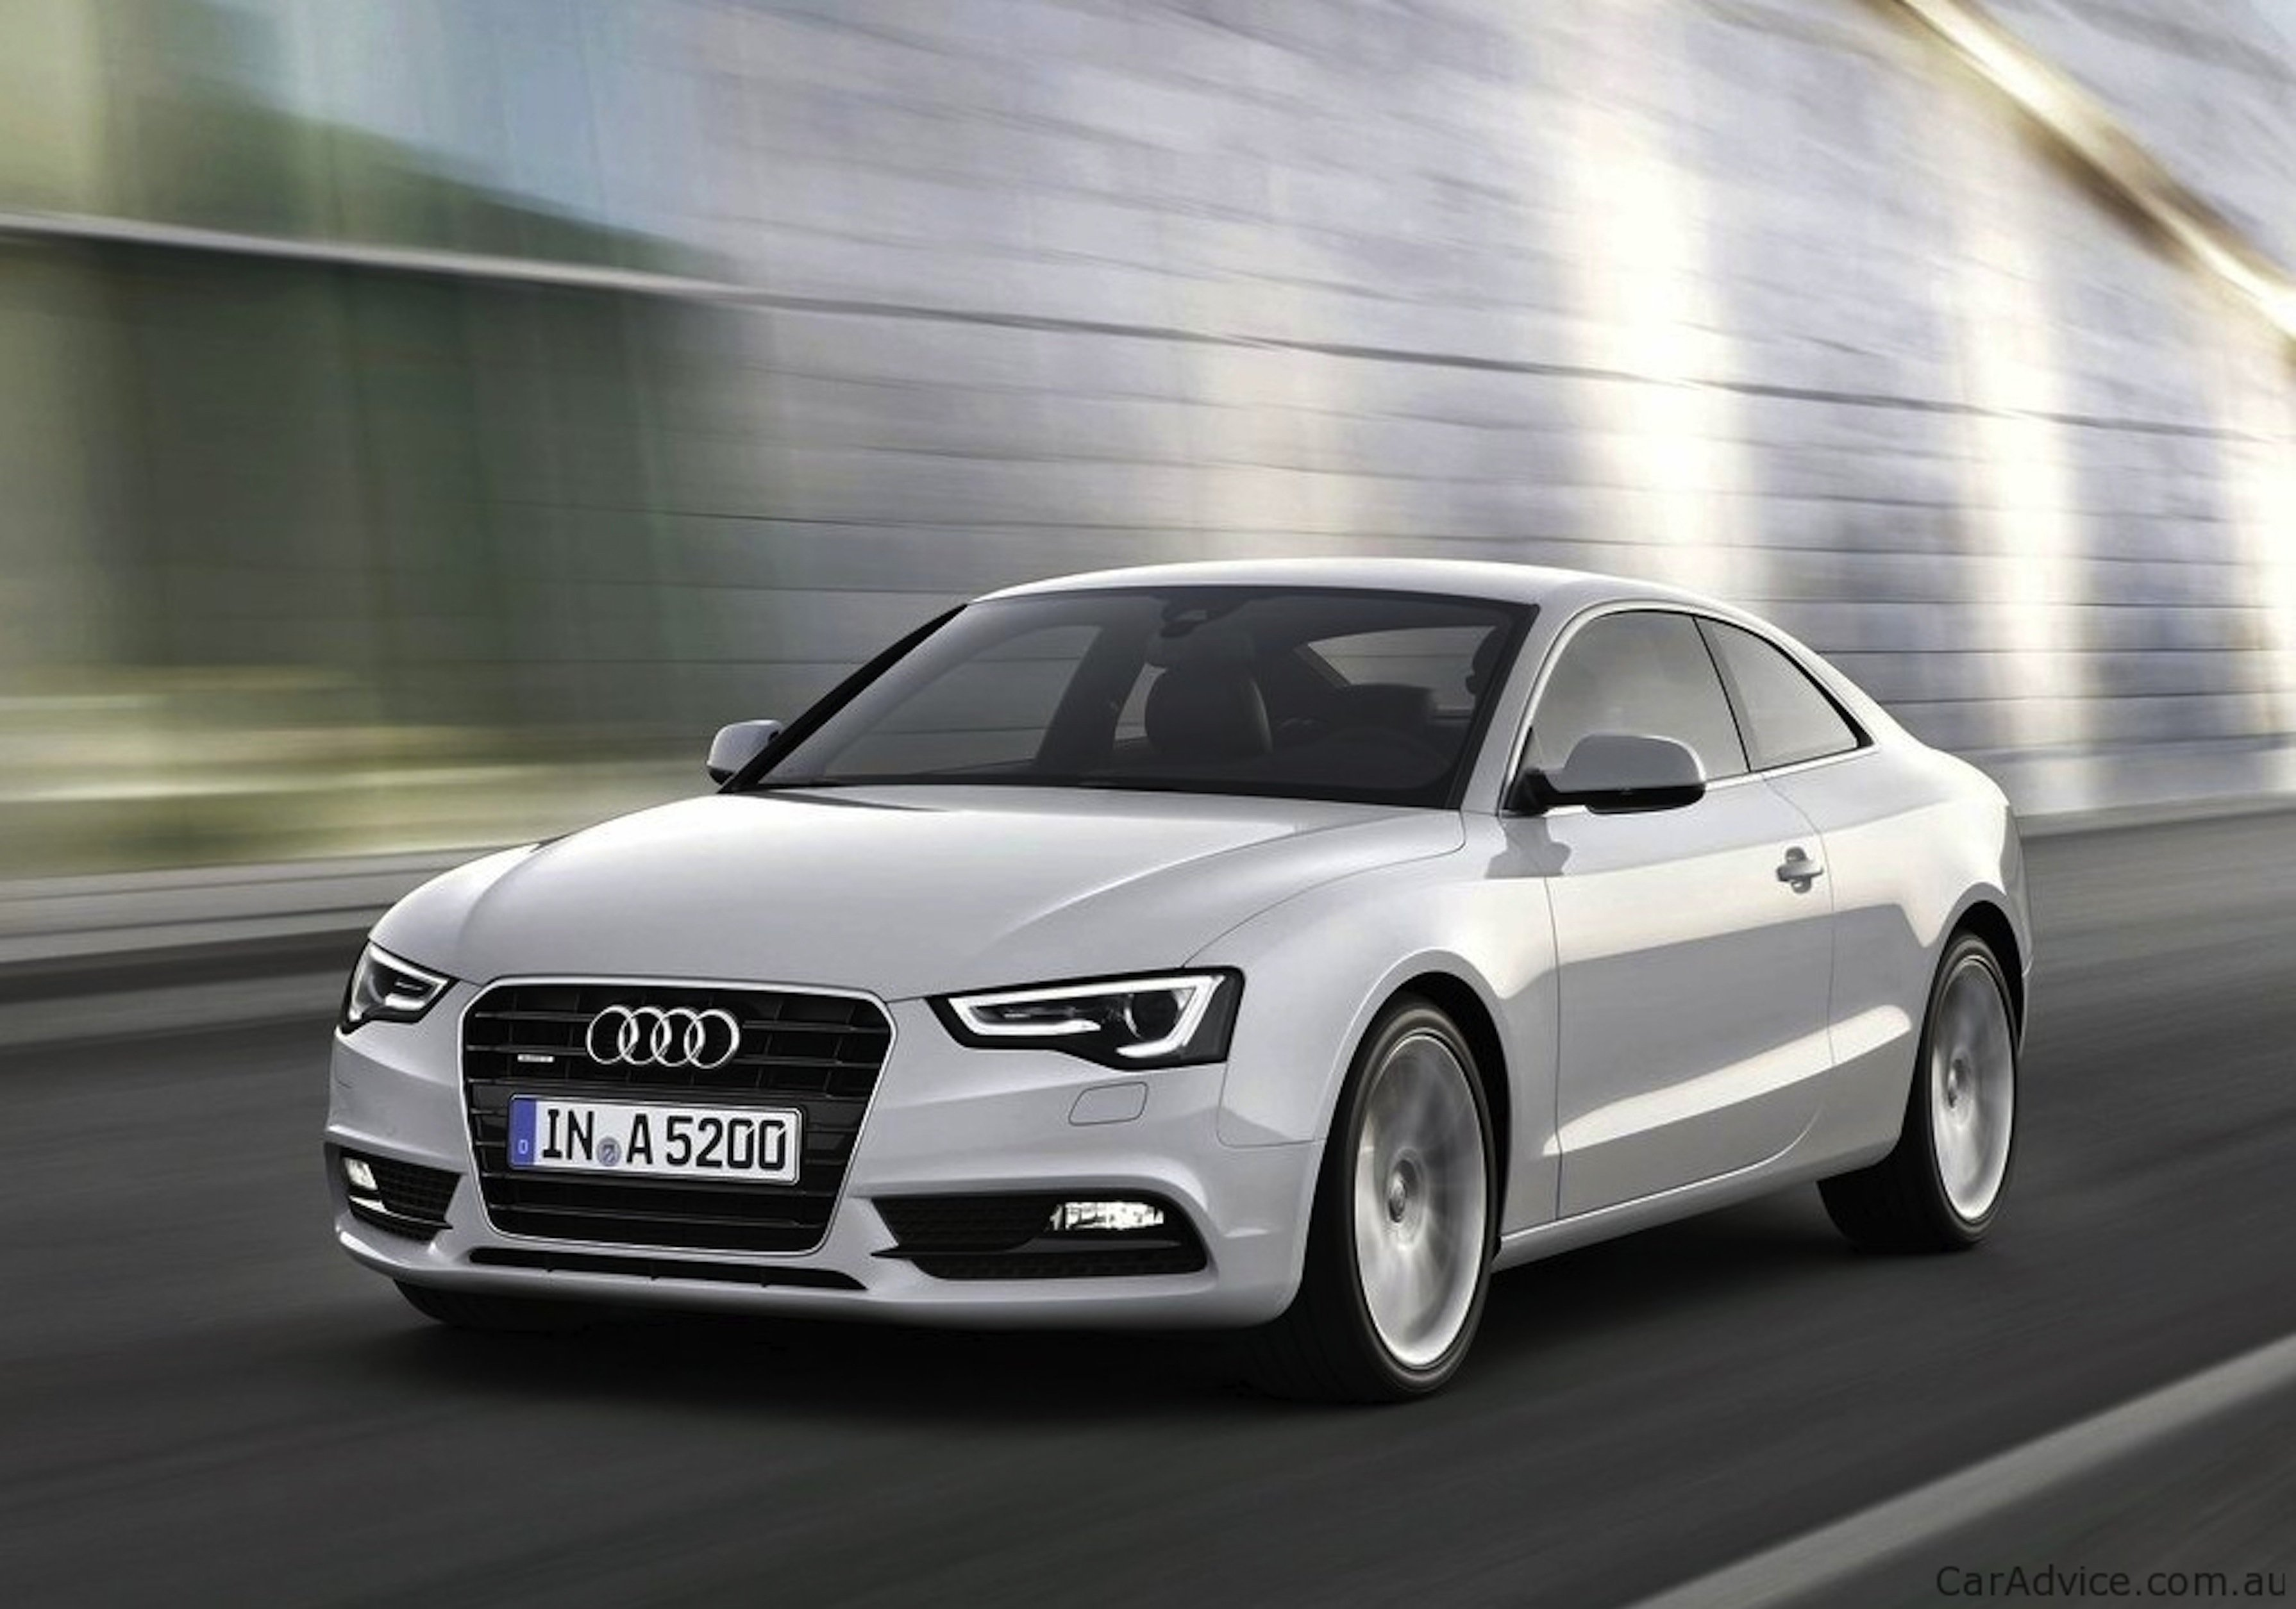 Latest Audi New Cars 2012 Photos 1 Of 16 Free Download